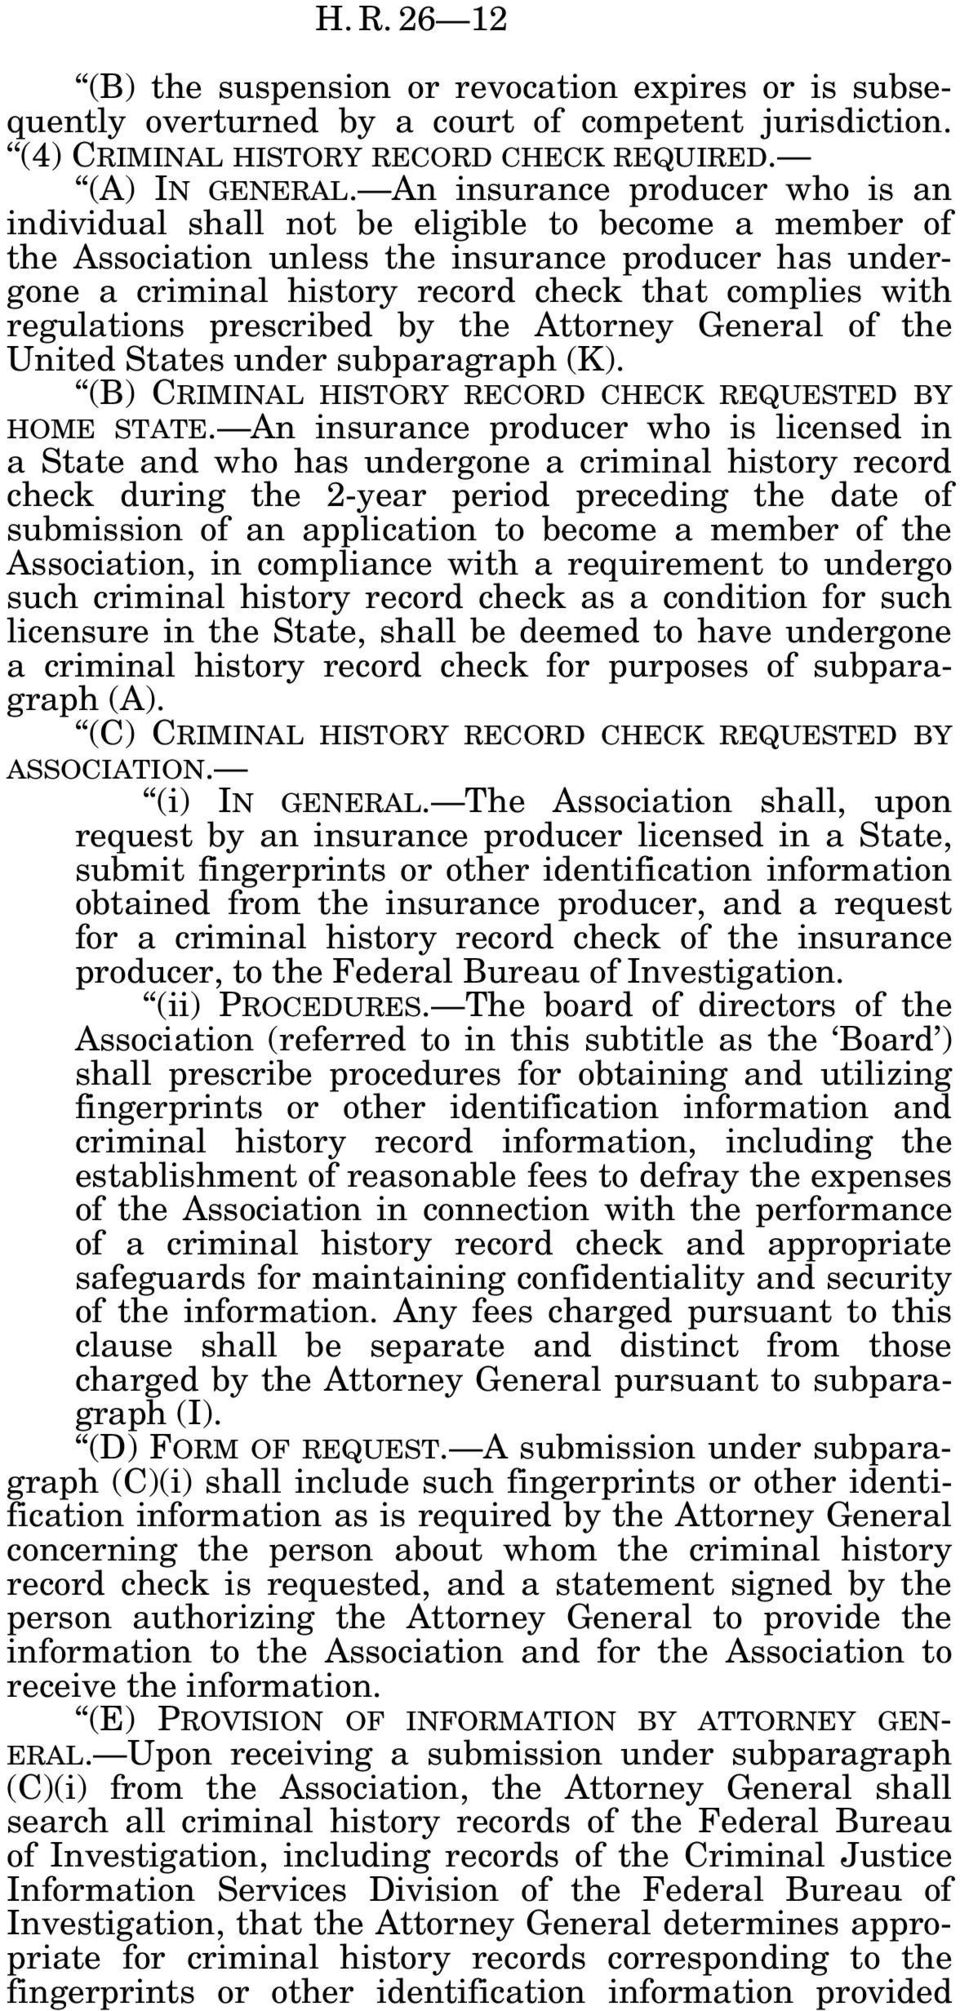 regulations prescribed by the Attorney General of the United States under subparagraph (K). (B) CRIMINAL HISTORY RECORD CHECK REQUESTED BY HOME STATE.